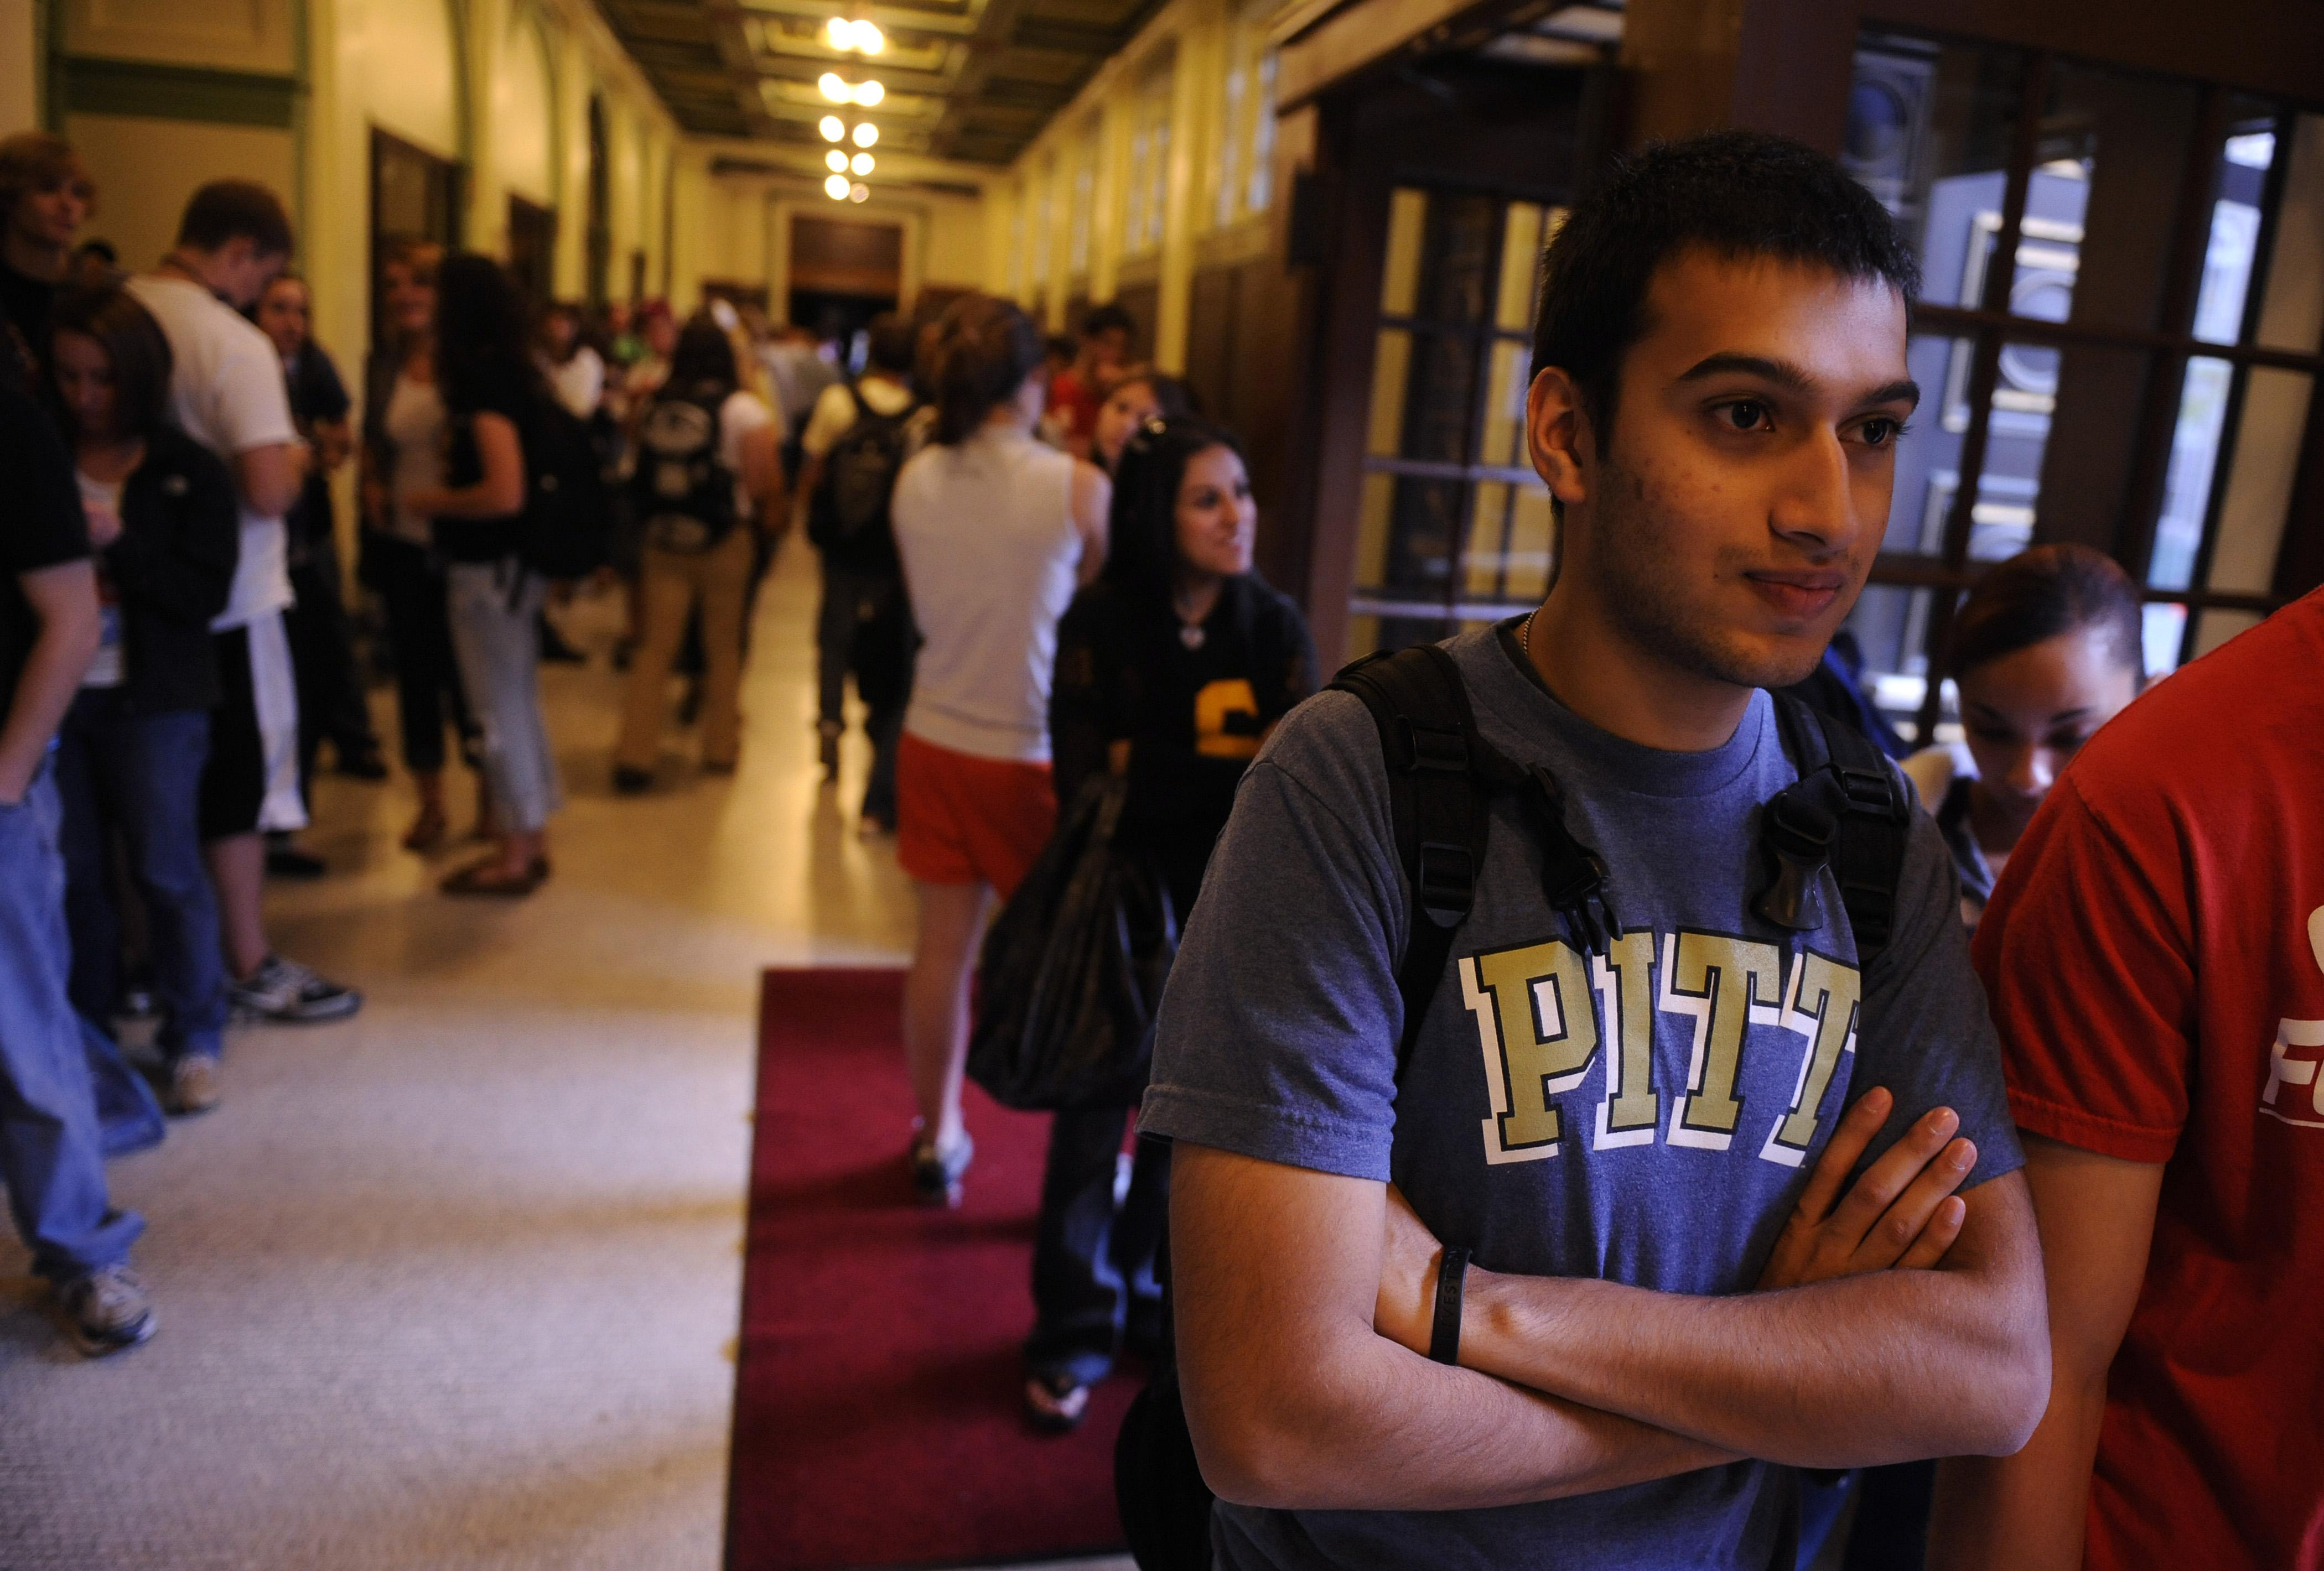 Students at the University of Pittsburgh.